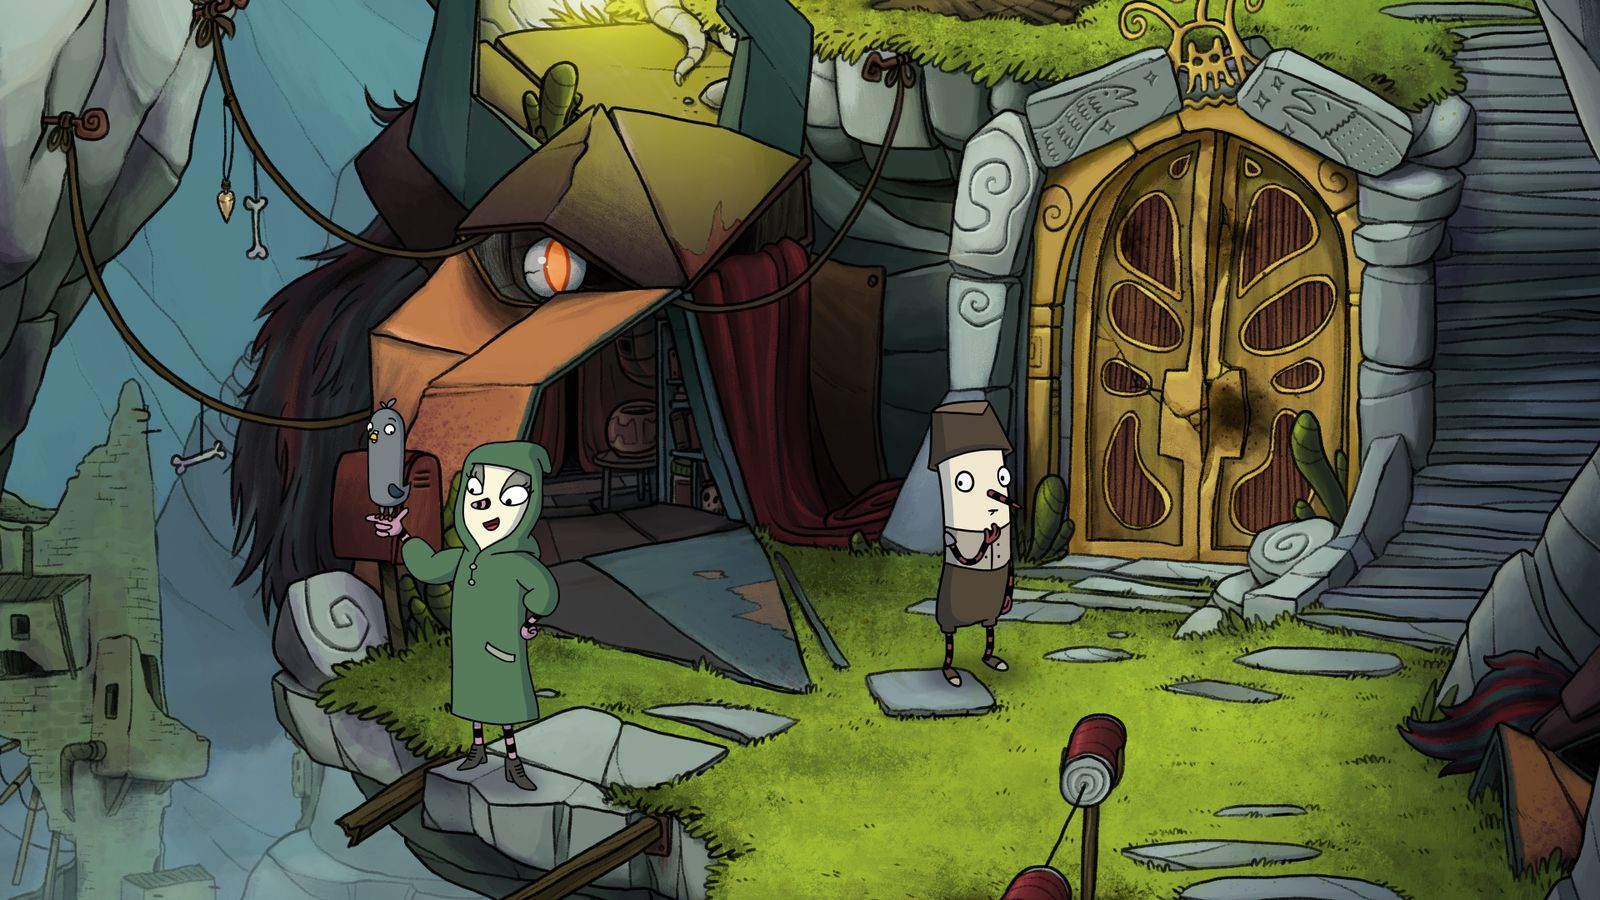 A point-and-click adventure comes to consoles, with the help of a pigeon